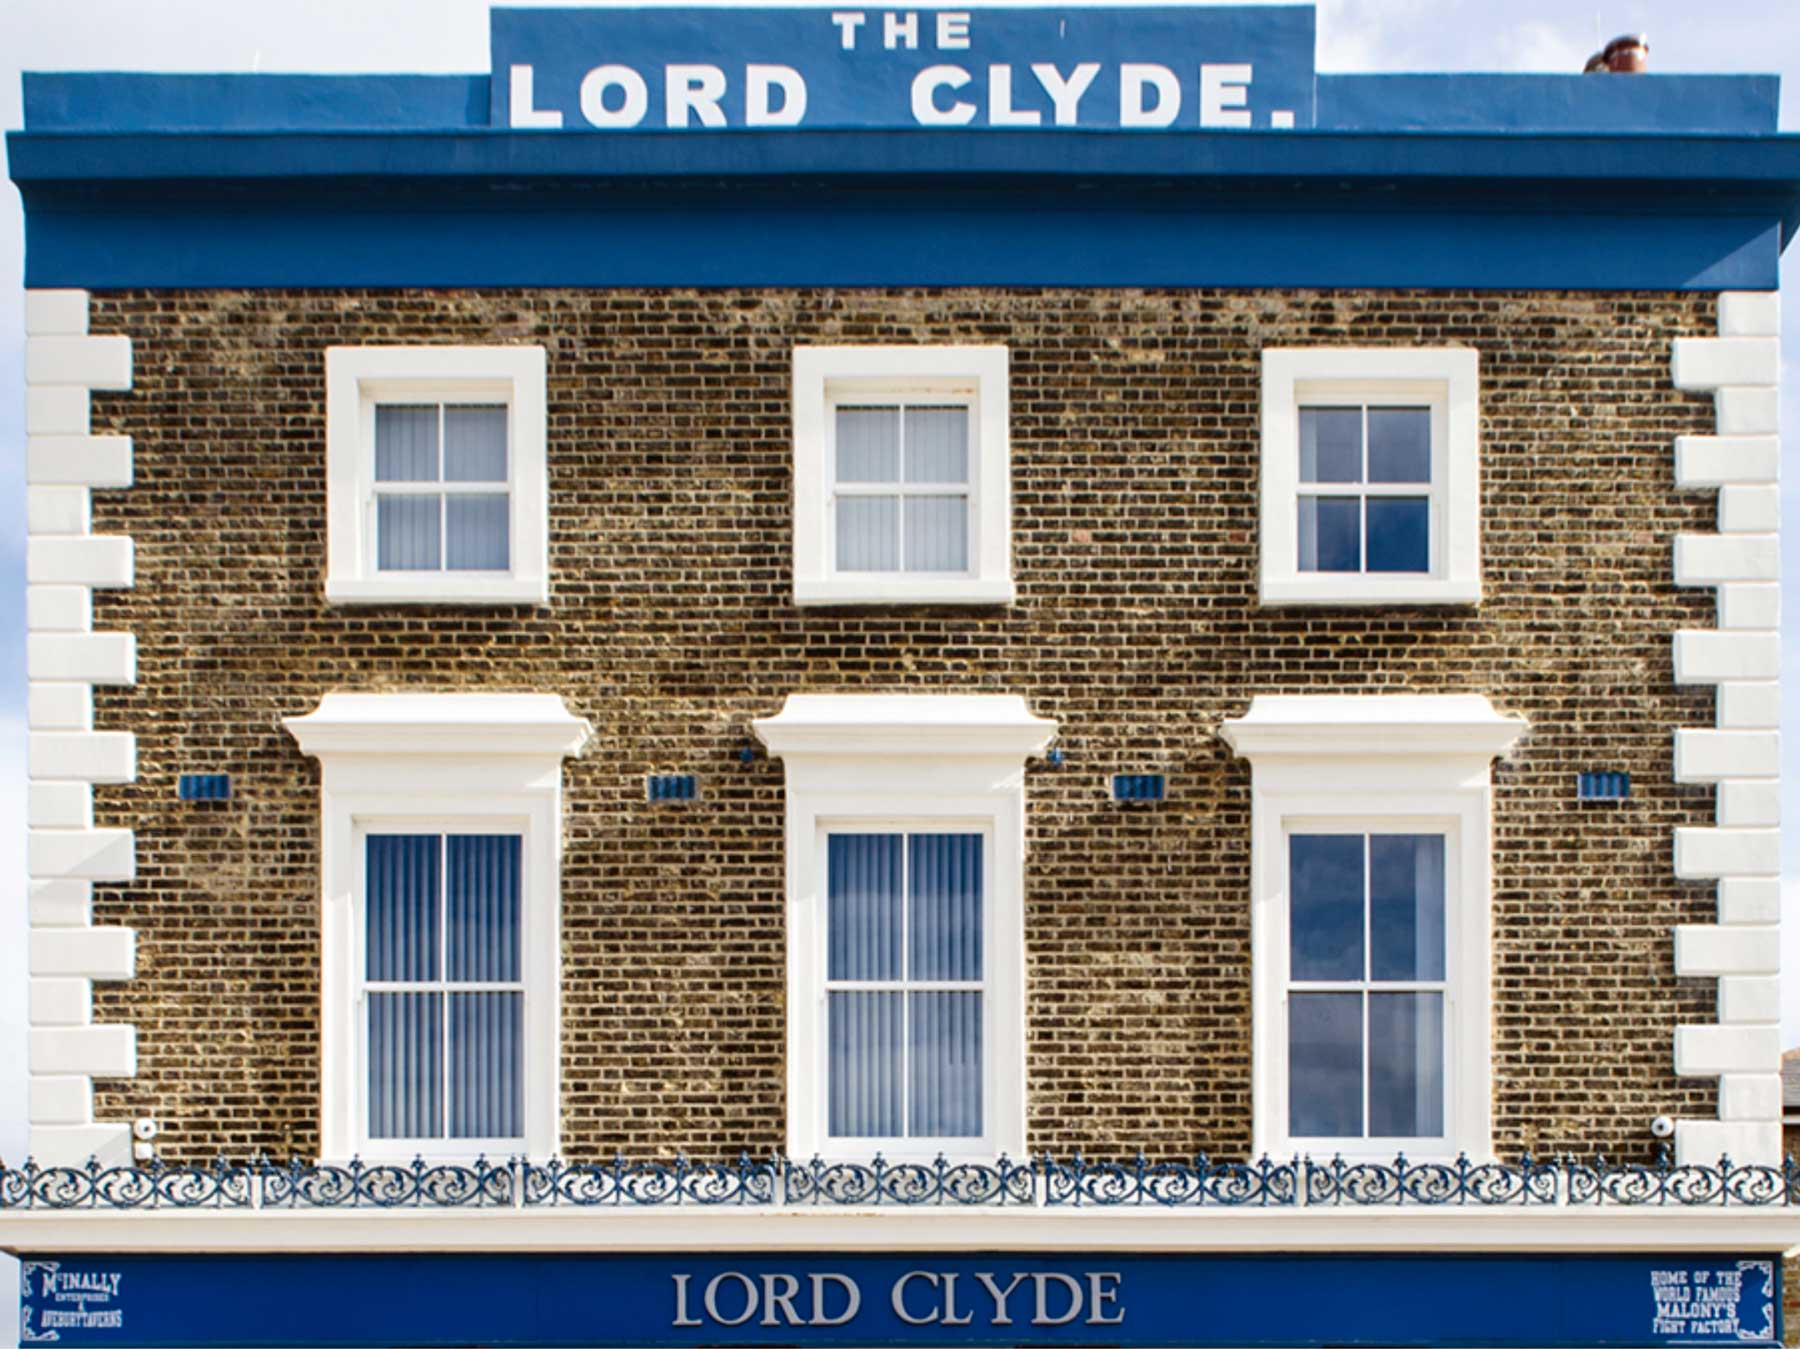 The Lord Clyde pub